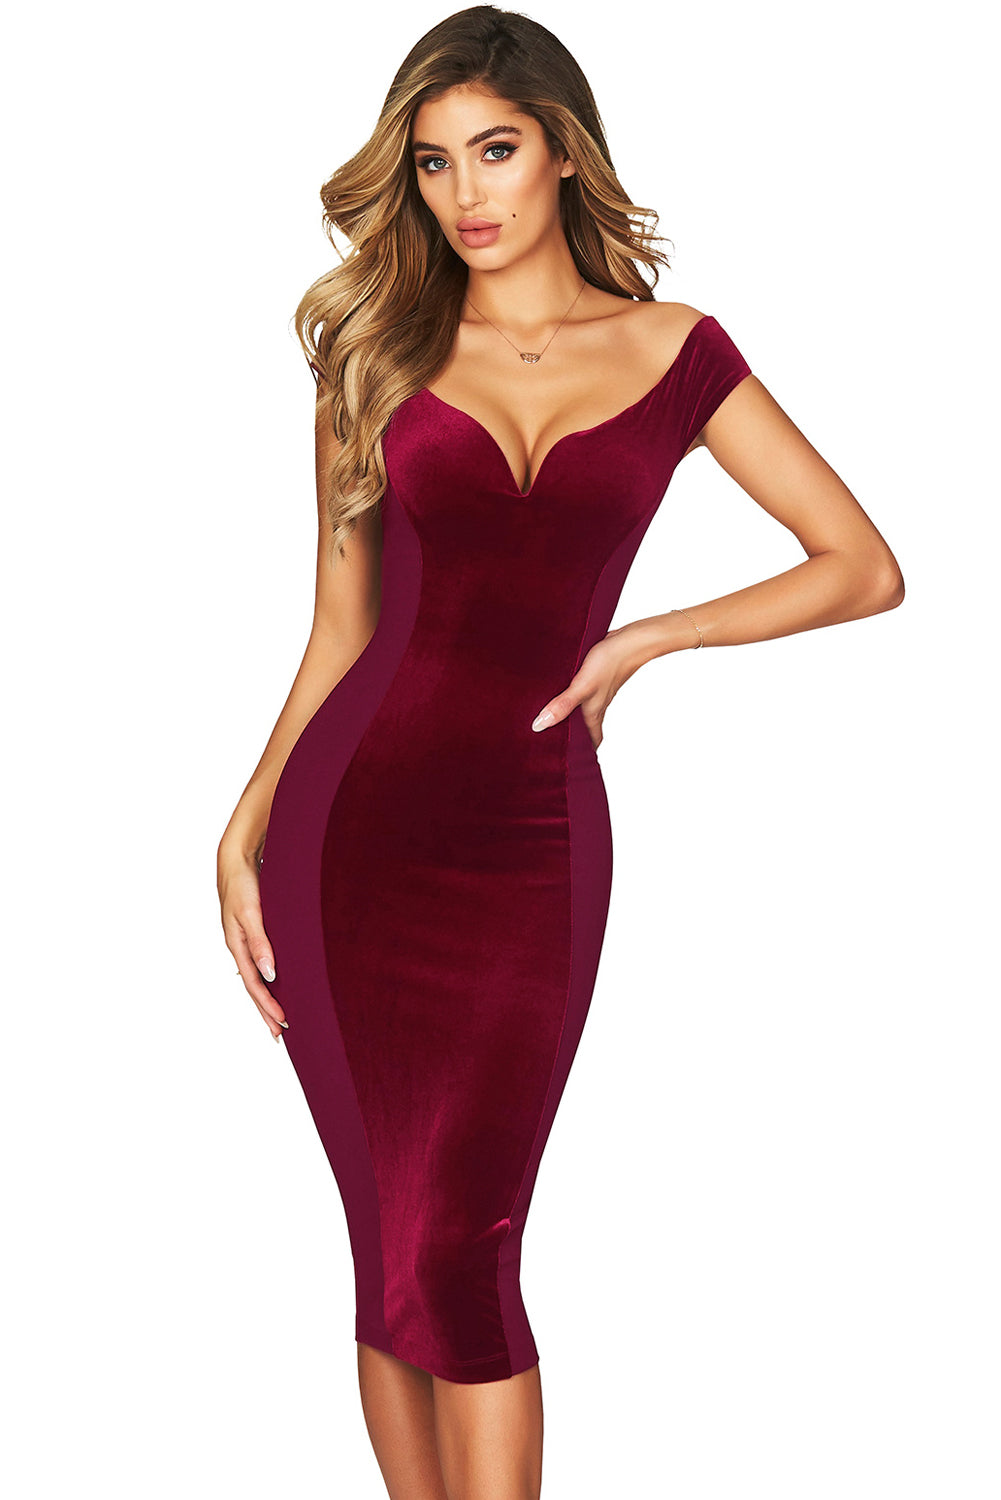 Show Hourglass Figure Burgundy Off Shoulder Dress